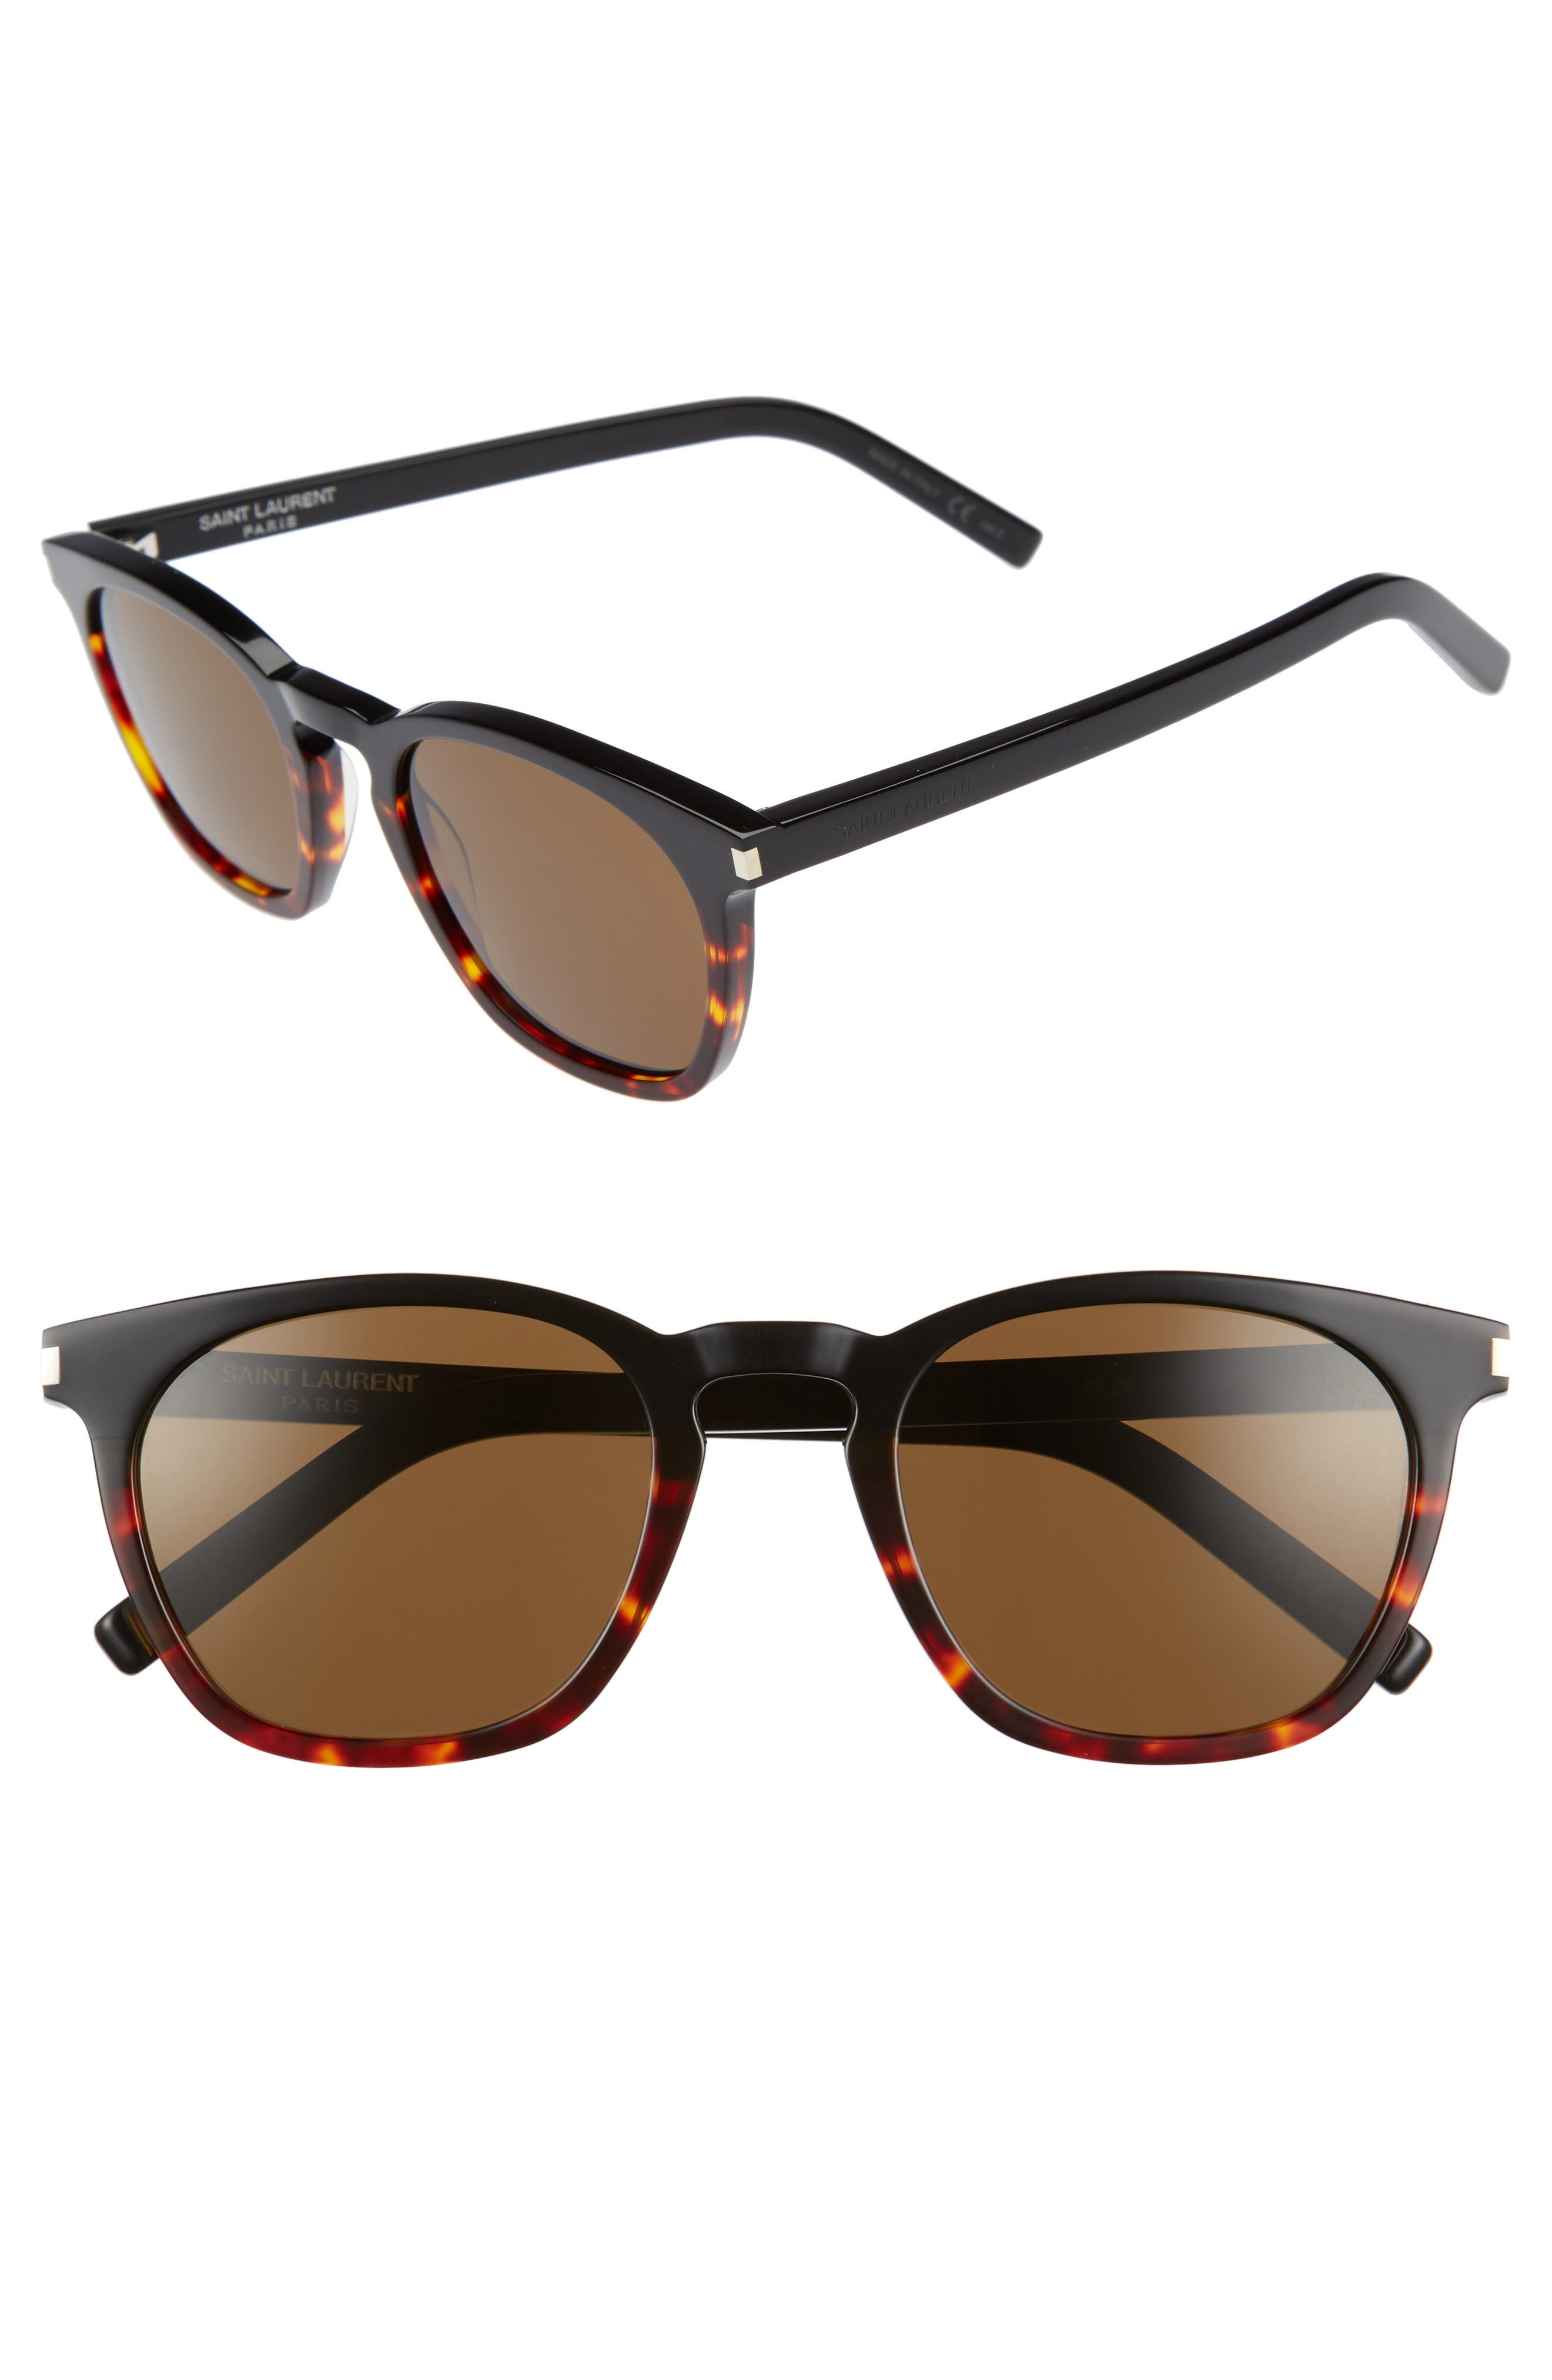 SL 28 51mm Keyhole Sunglasses,                         Main,                         color, 001